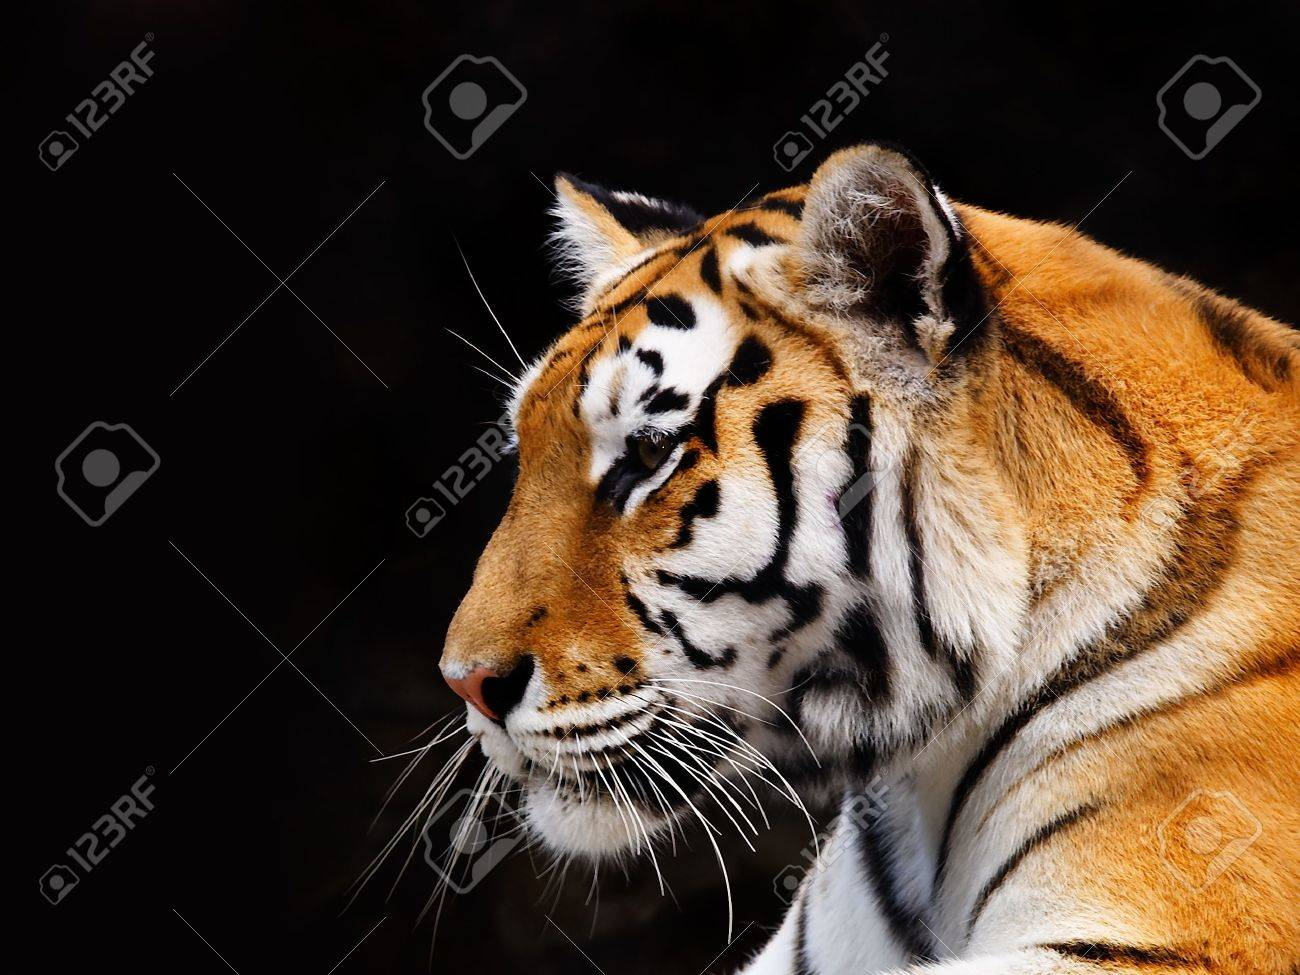 Big Tiger on a black background Stock Photo - 553287